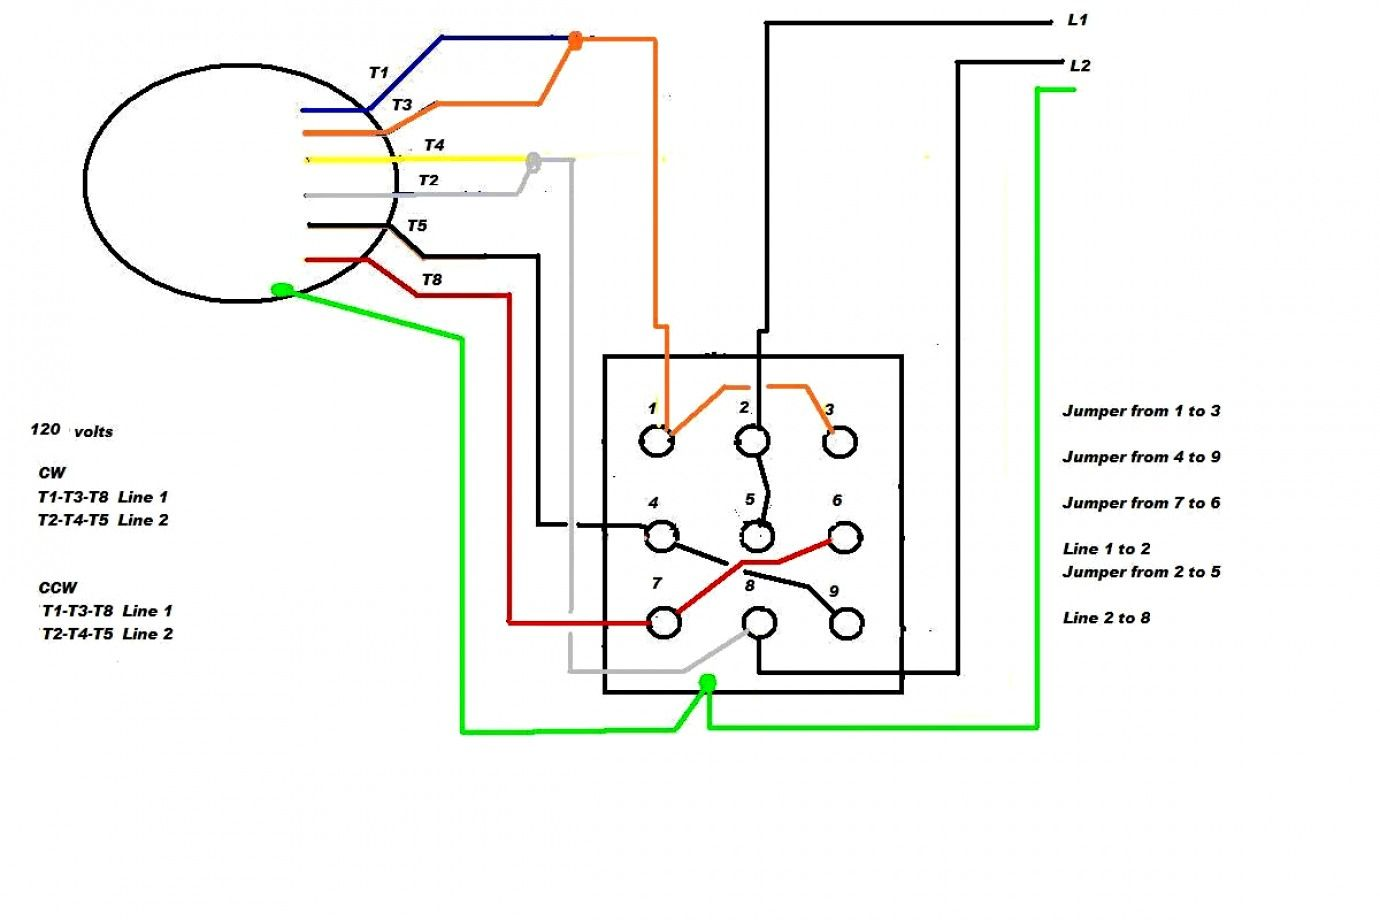 3 Phase Wiring Diagram For House, http://bookingritzcarlton.info/3-phase- wiring-diagram-for-house/ | Electrical circuit diagram, Circuit diagram,  CapacitorsPinterest